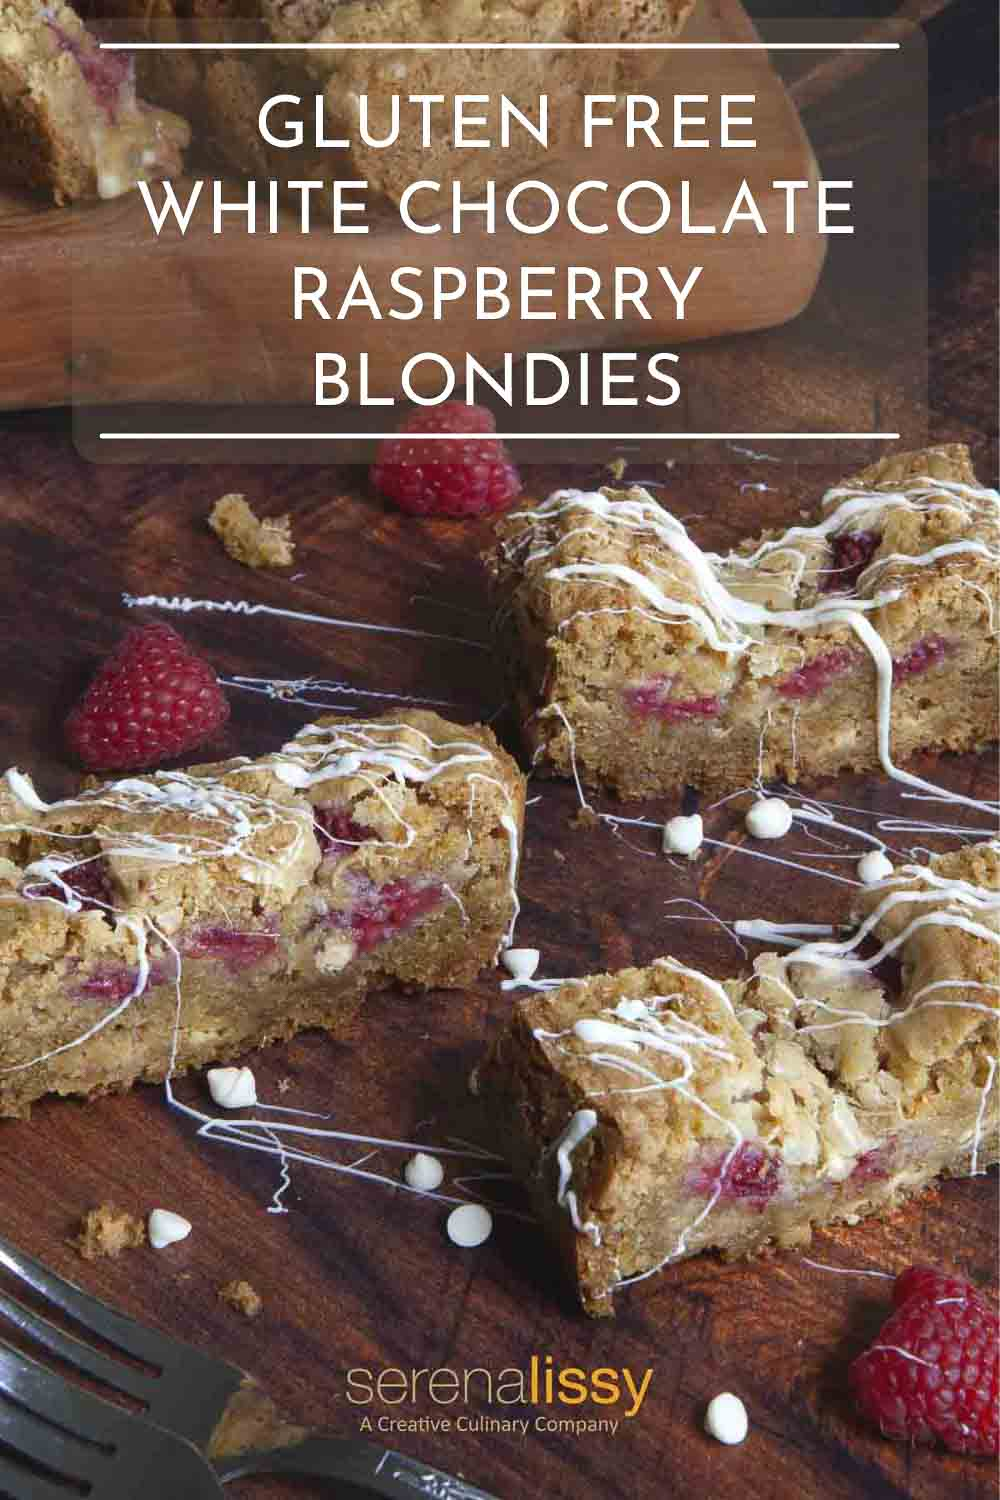 Blondie slices on a table